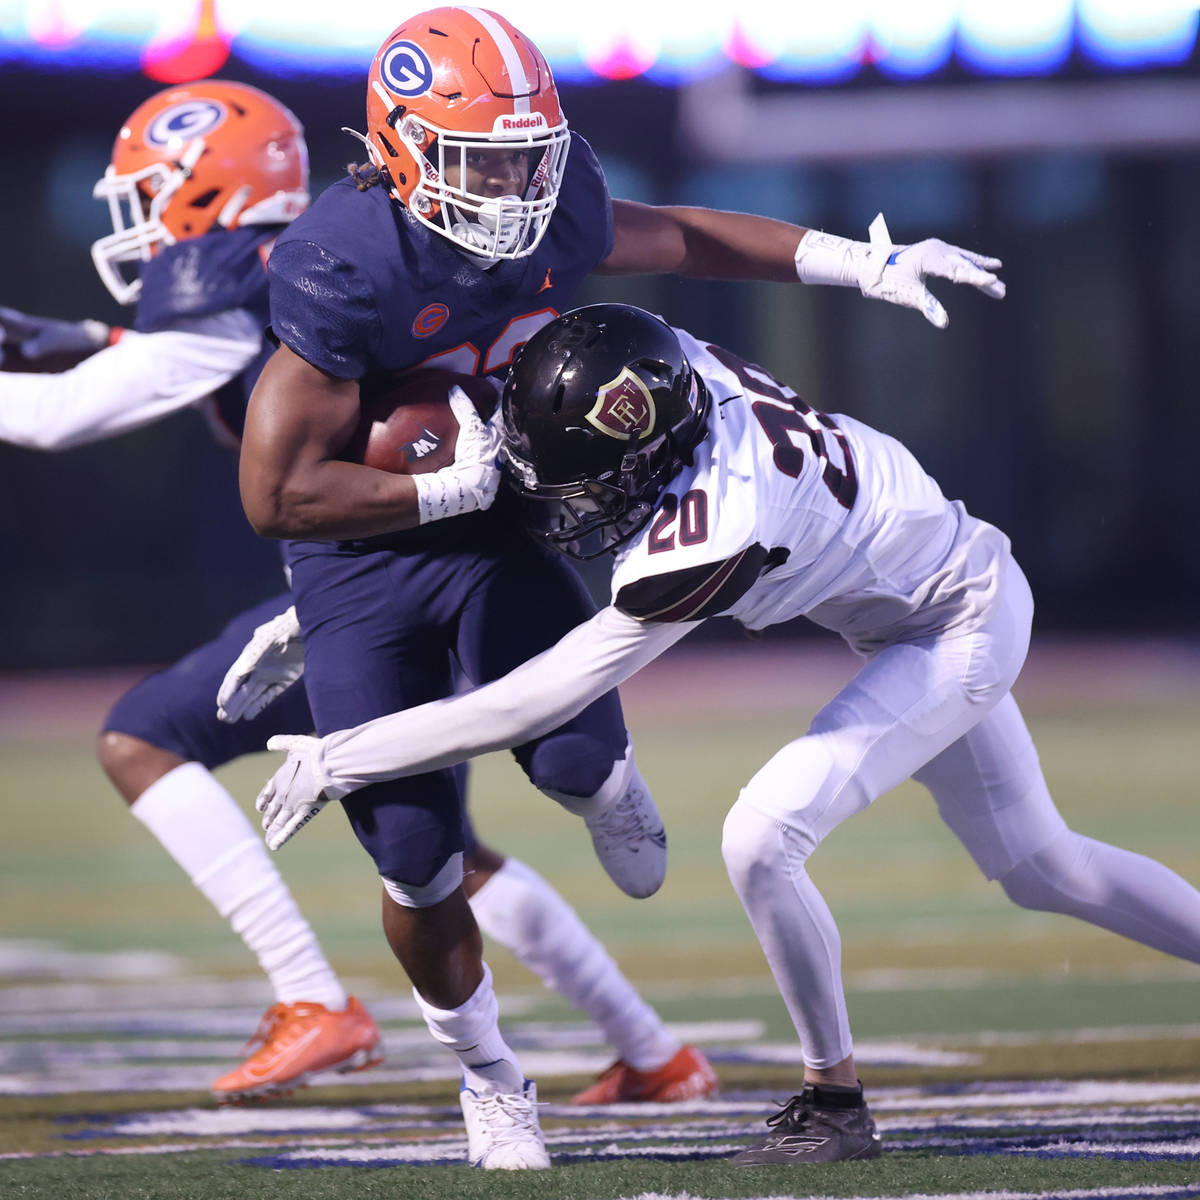 Bishop Gorman's Sebastian Shannon (23) is tackled by Faith Lutheran's Chandler Silva (20) durin ...